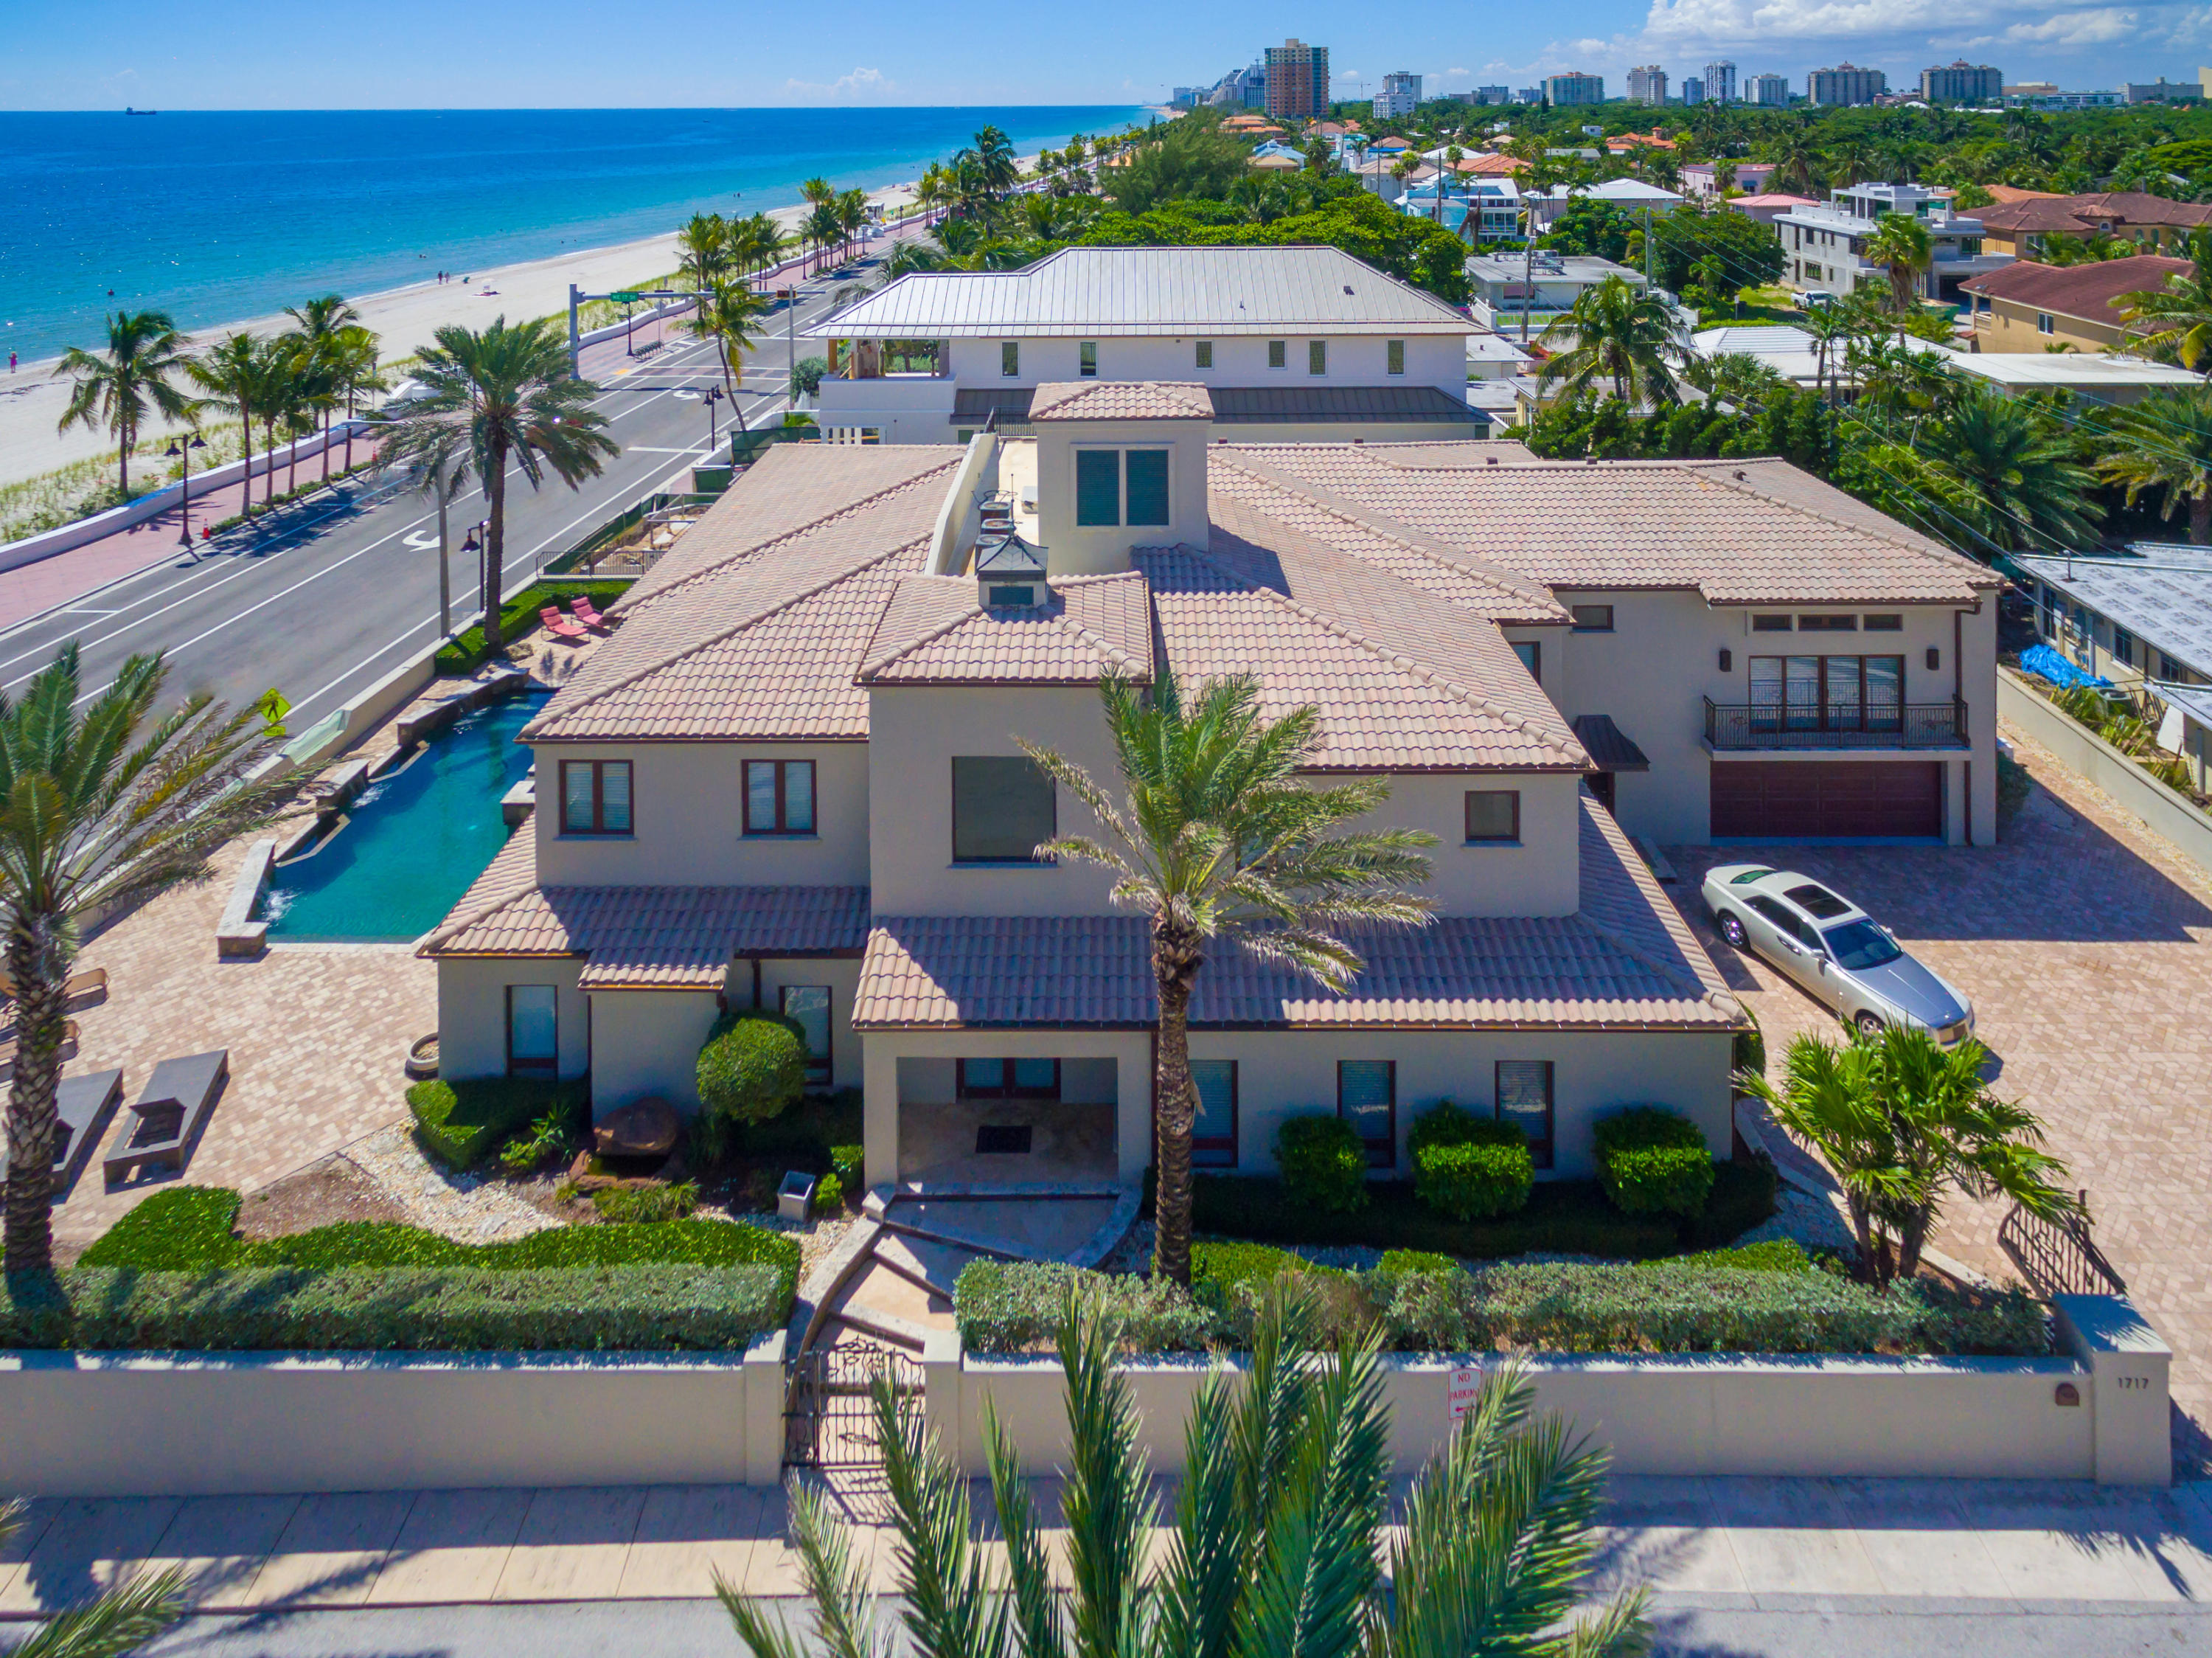 1717 Ft Lauderdale Beach Boulevard, Fort Lauderdale, Florida 33305, 9 Bedrooms Bedrooms, ,6.1 BathroomsBathrooms,Single Family,For Sale,LAS OLAS BY THE SEA,Ft Lauderdale Beach,RX-10538876